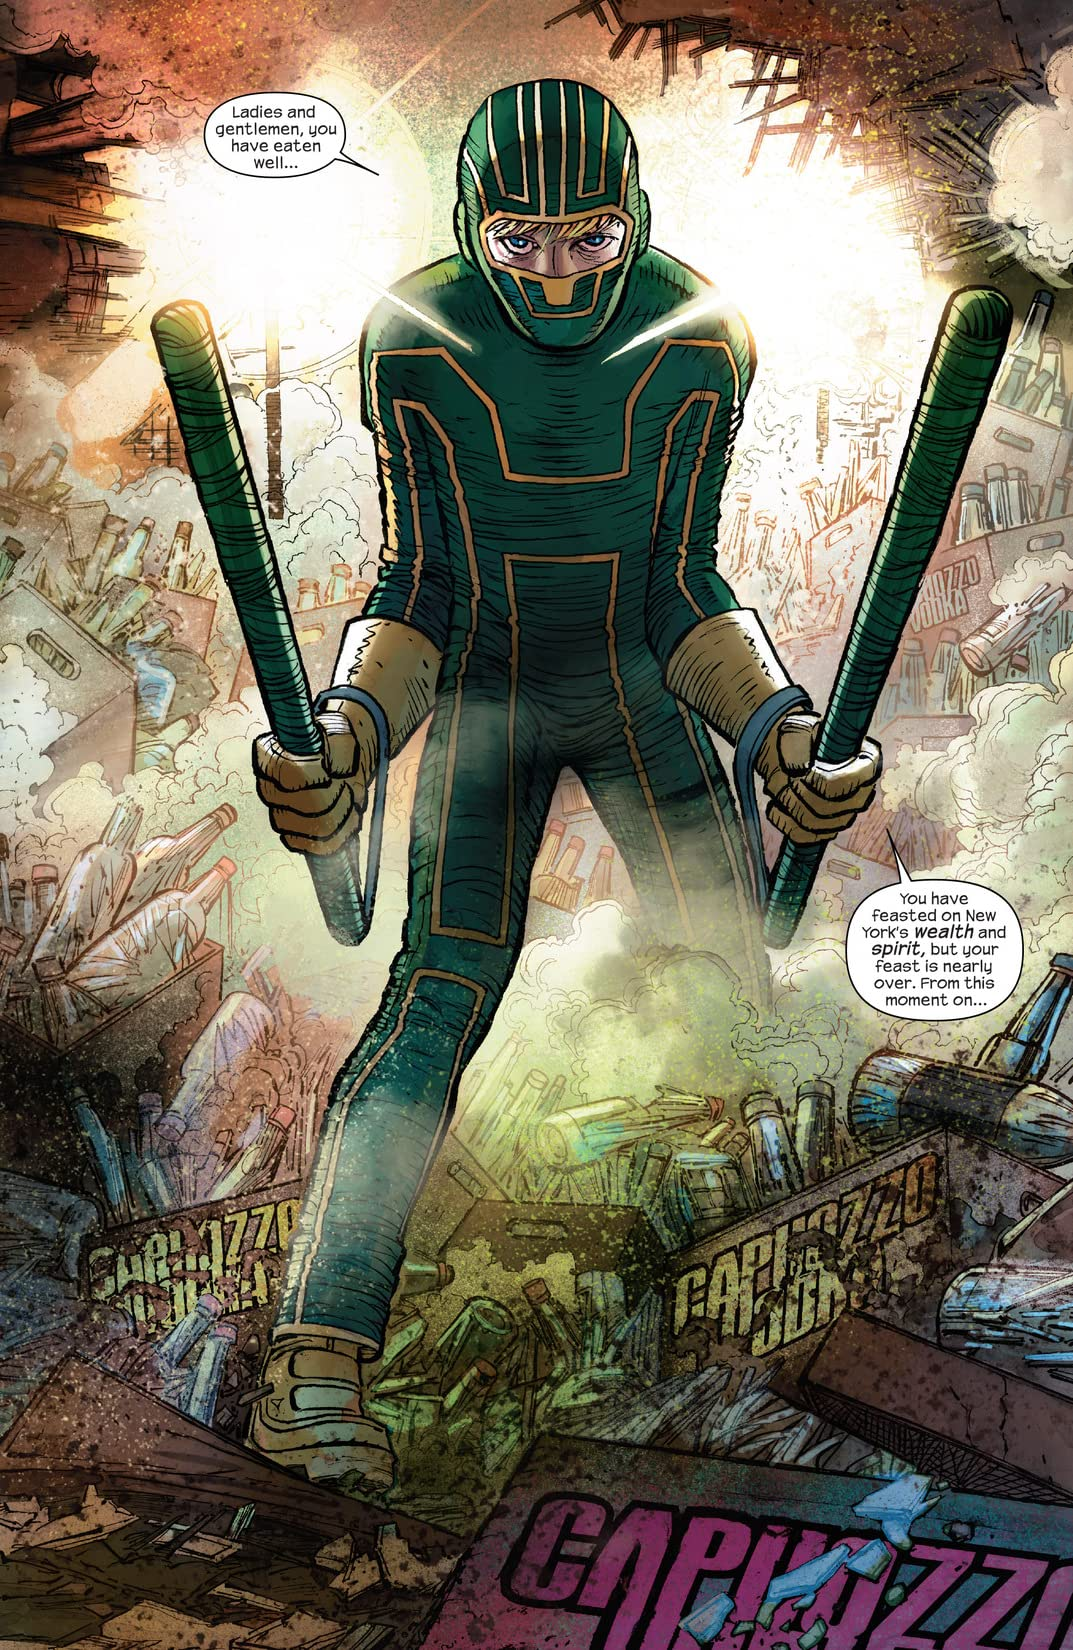 Kick-Ass 3 #8 (of 8)